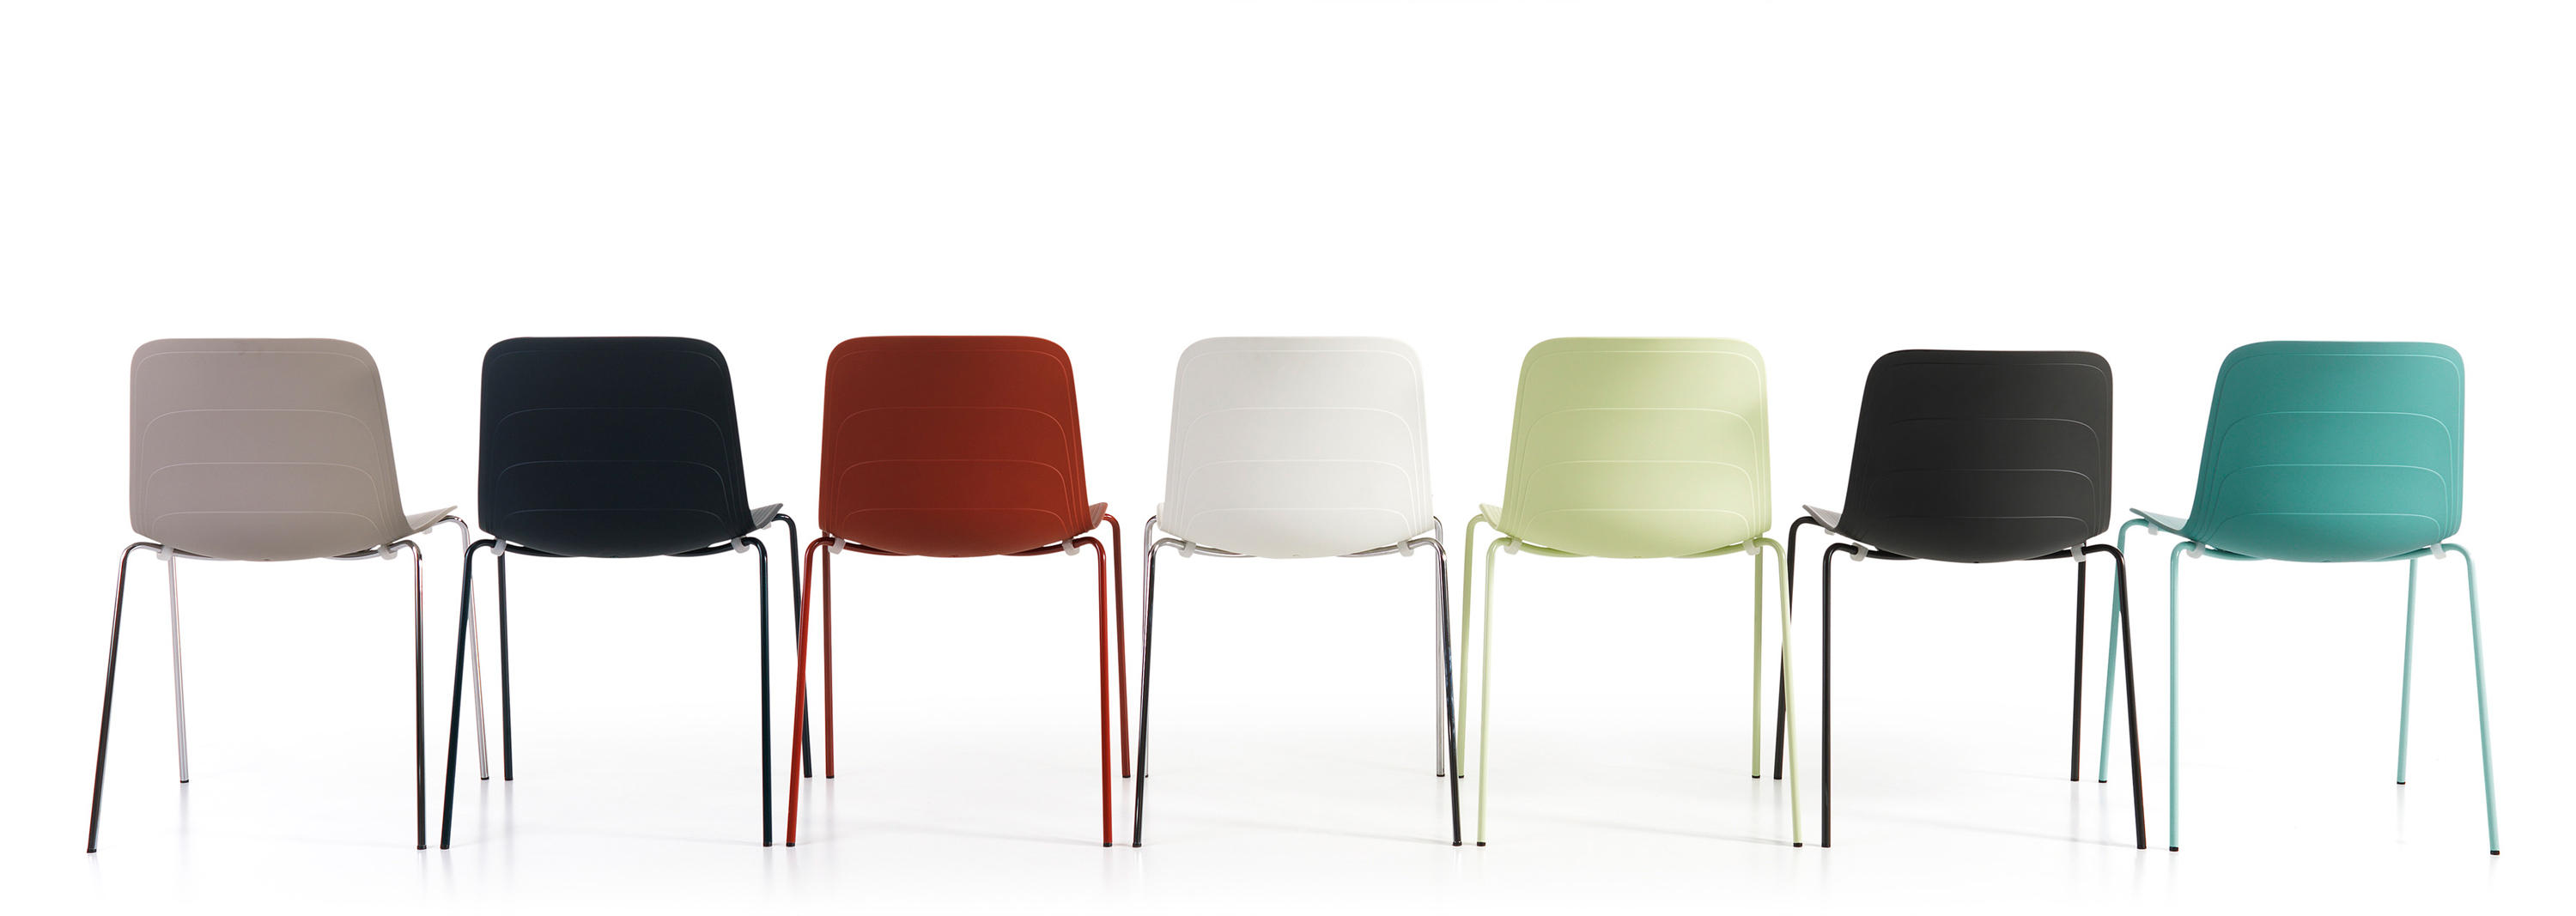 GRADE CHAIR Restaurant chairs from Lammhults Architonic